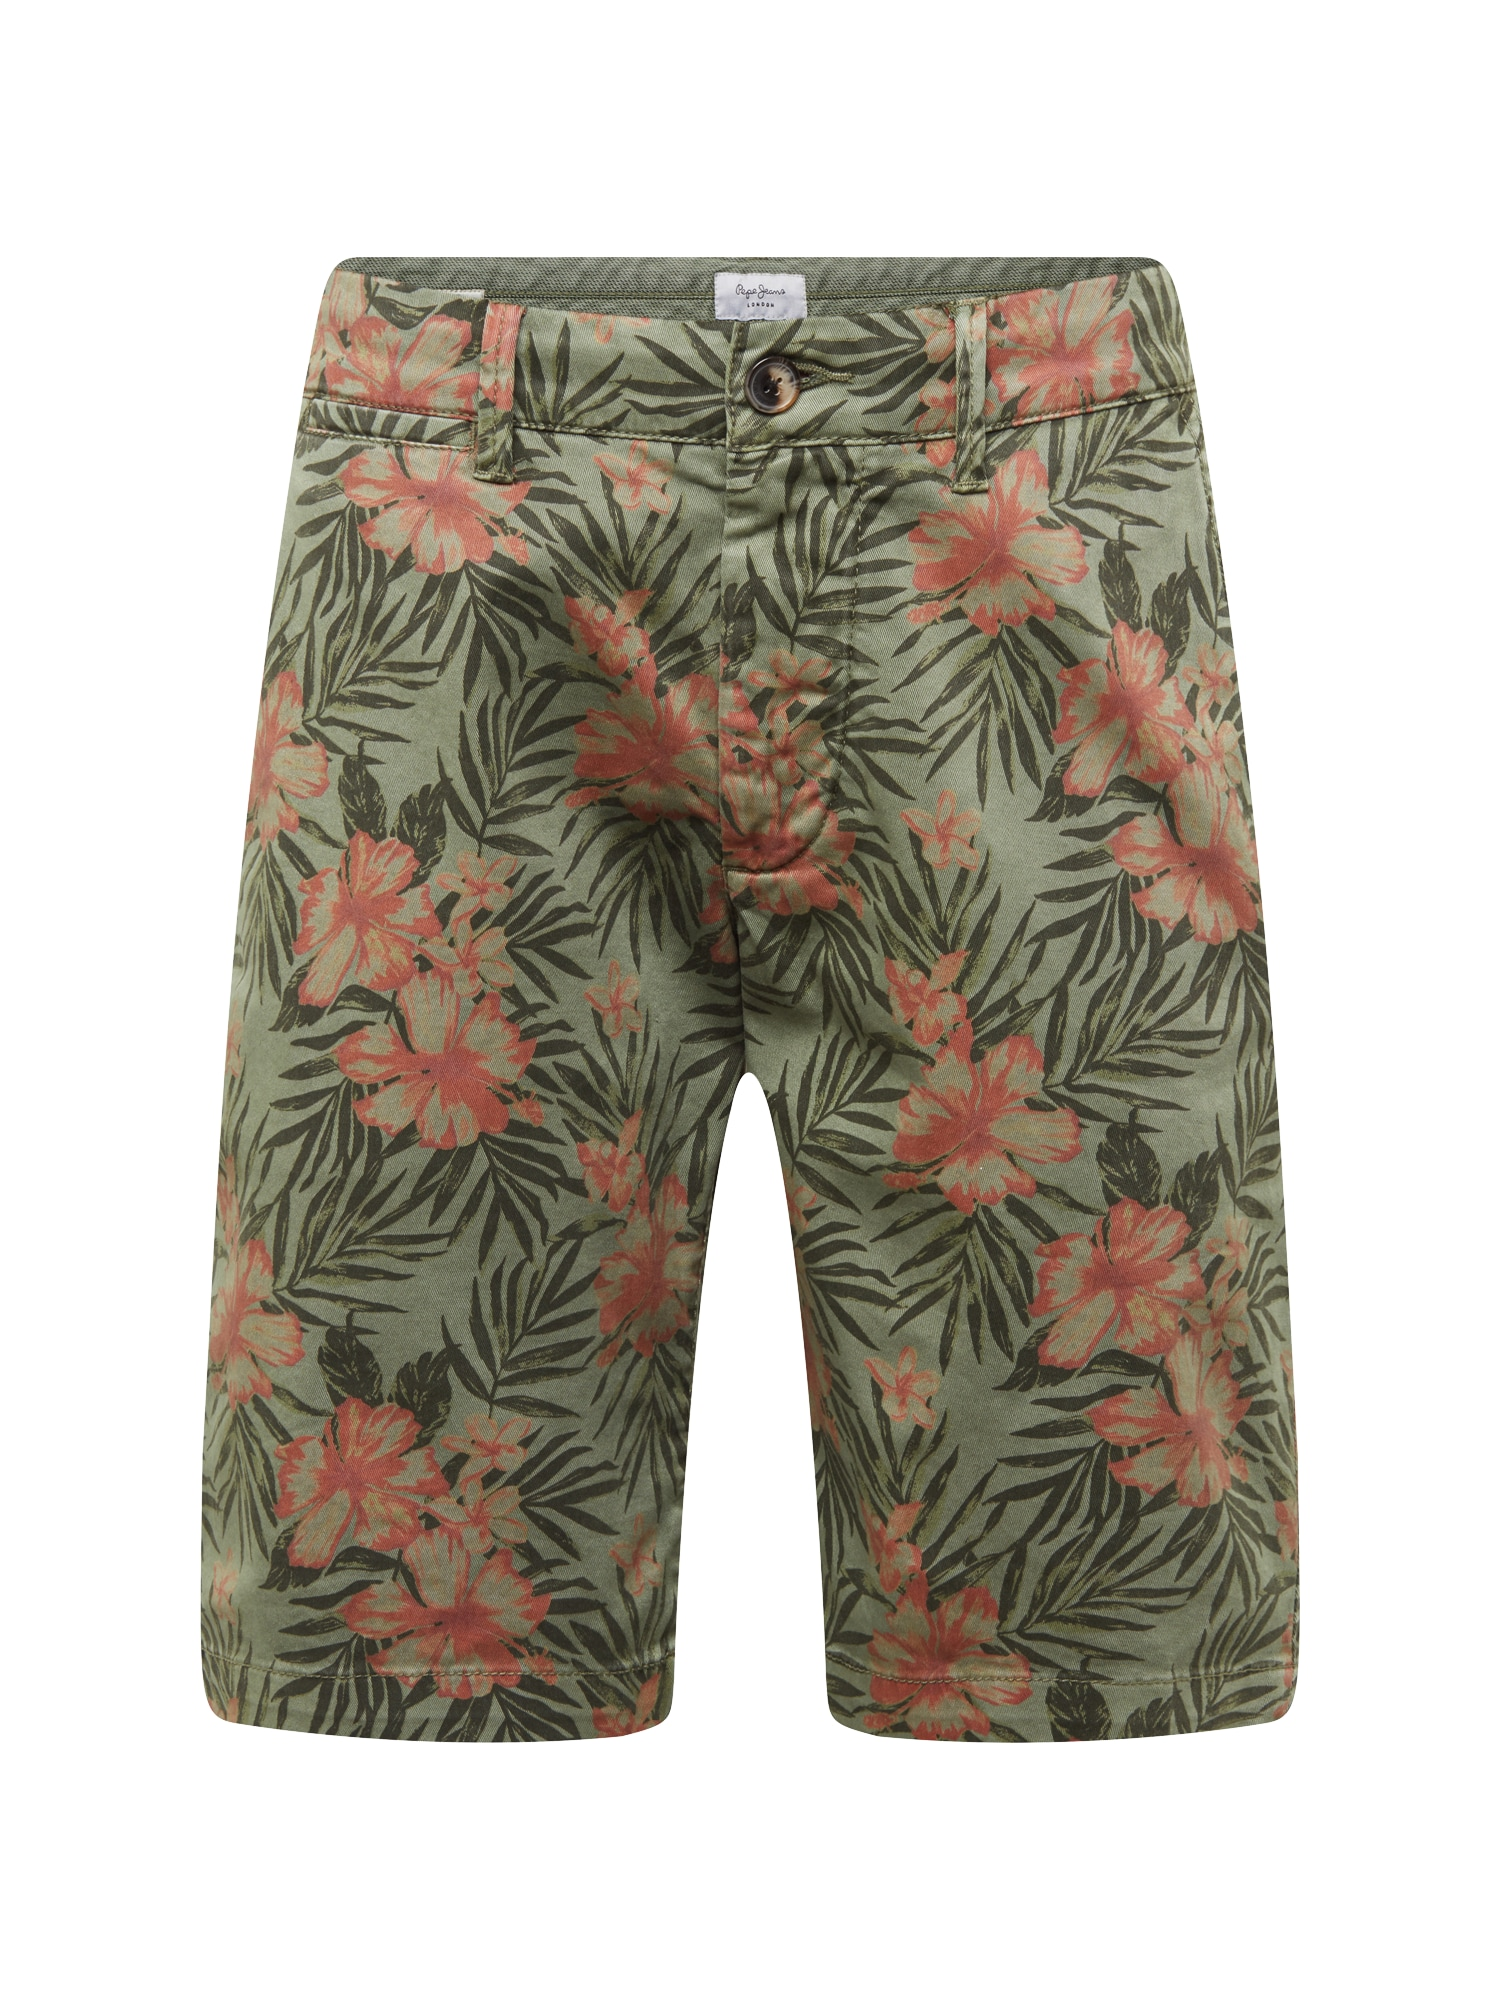 Chino kalhoty MC QUEEN SHORT FLORAL braun oliv Pepe Jeans